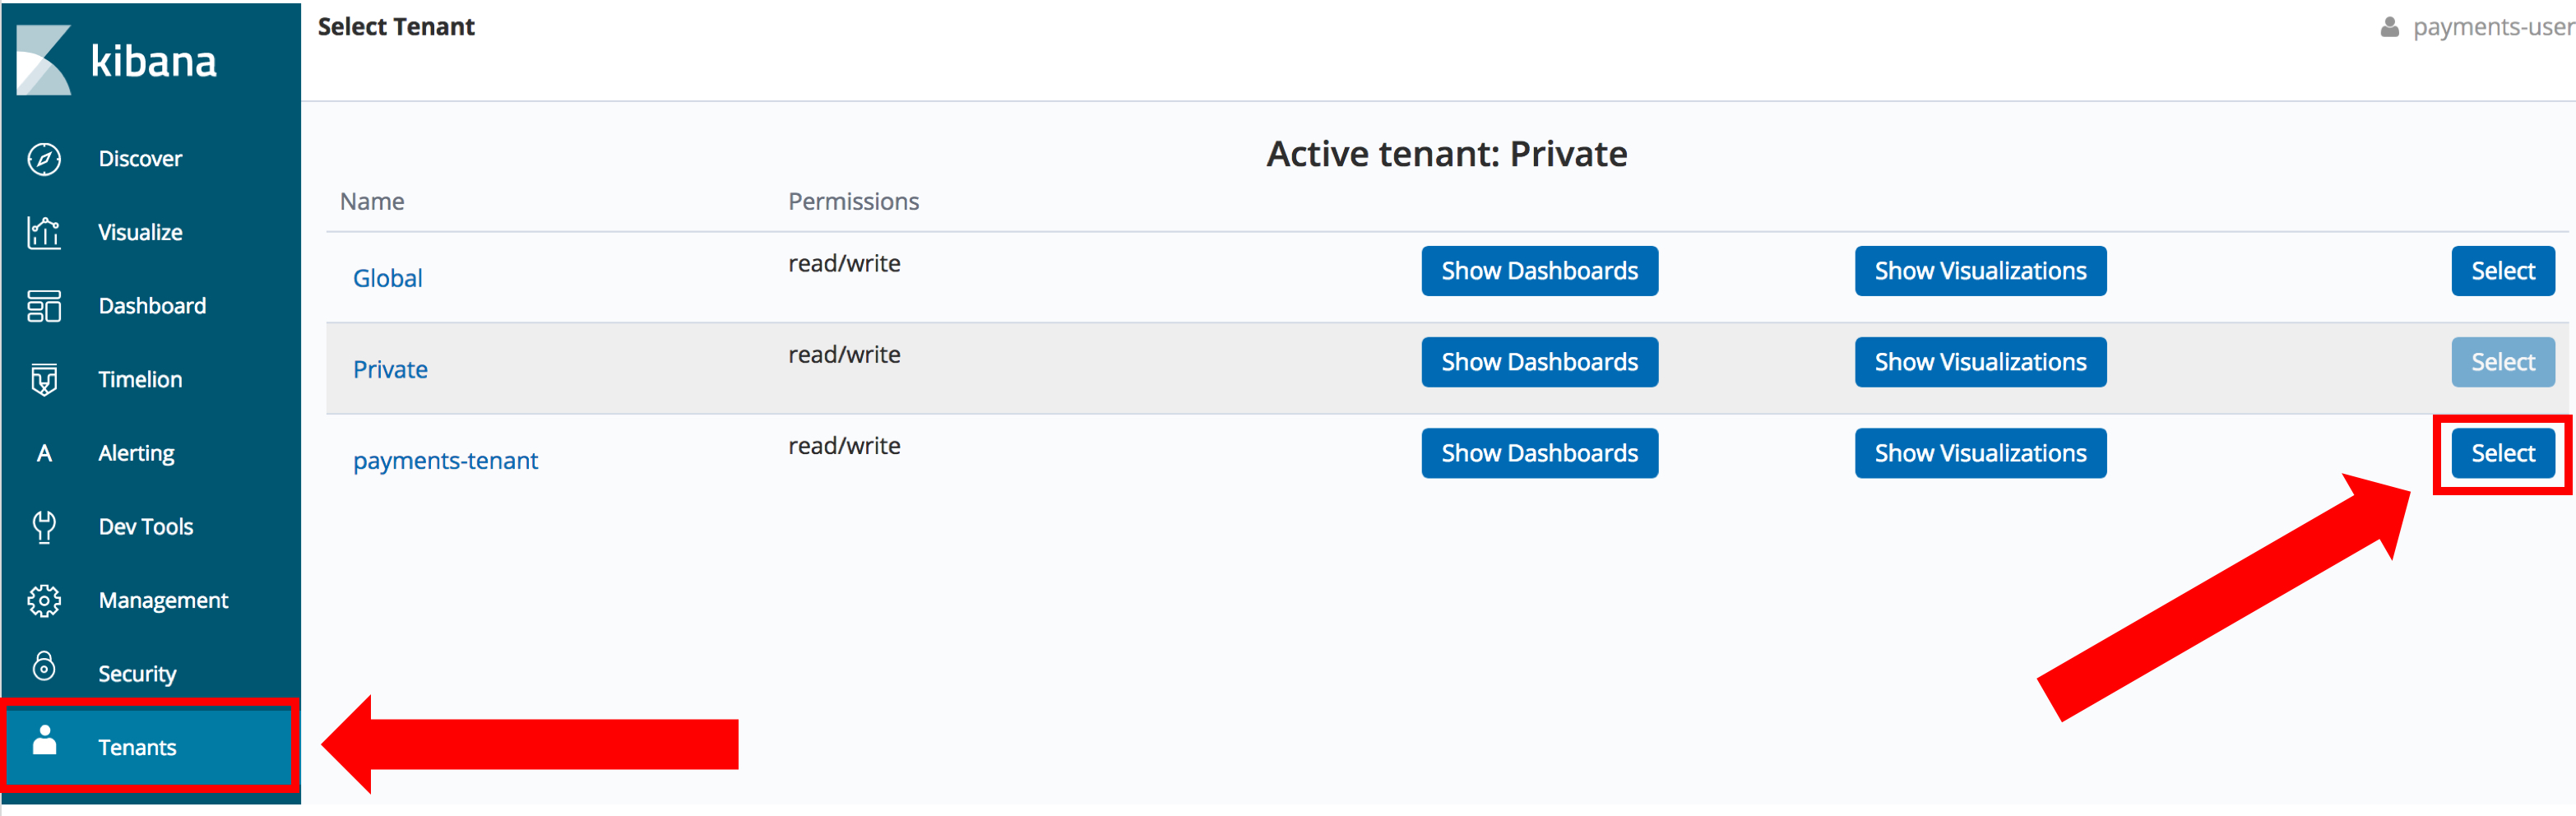 Open Distro for Elasticsearch Security plugin selecting the tenant for Kibana visualizations and dashboards